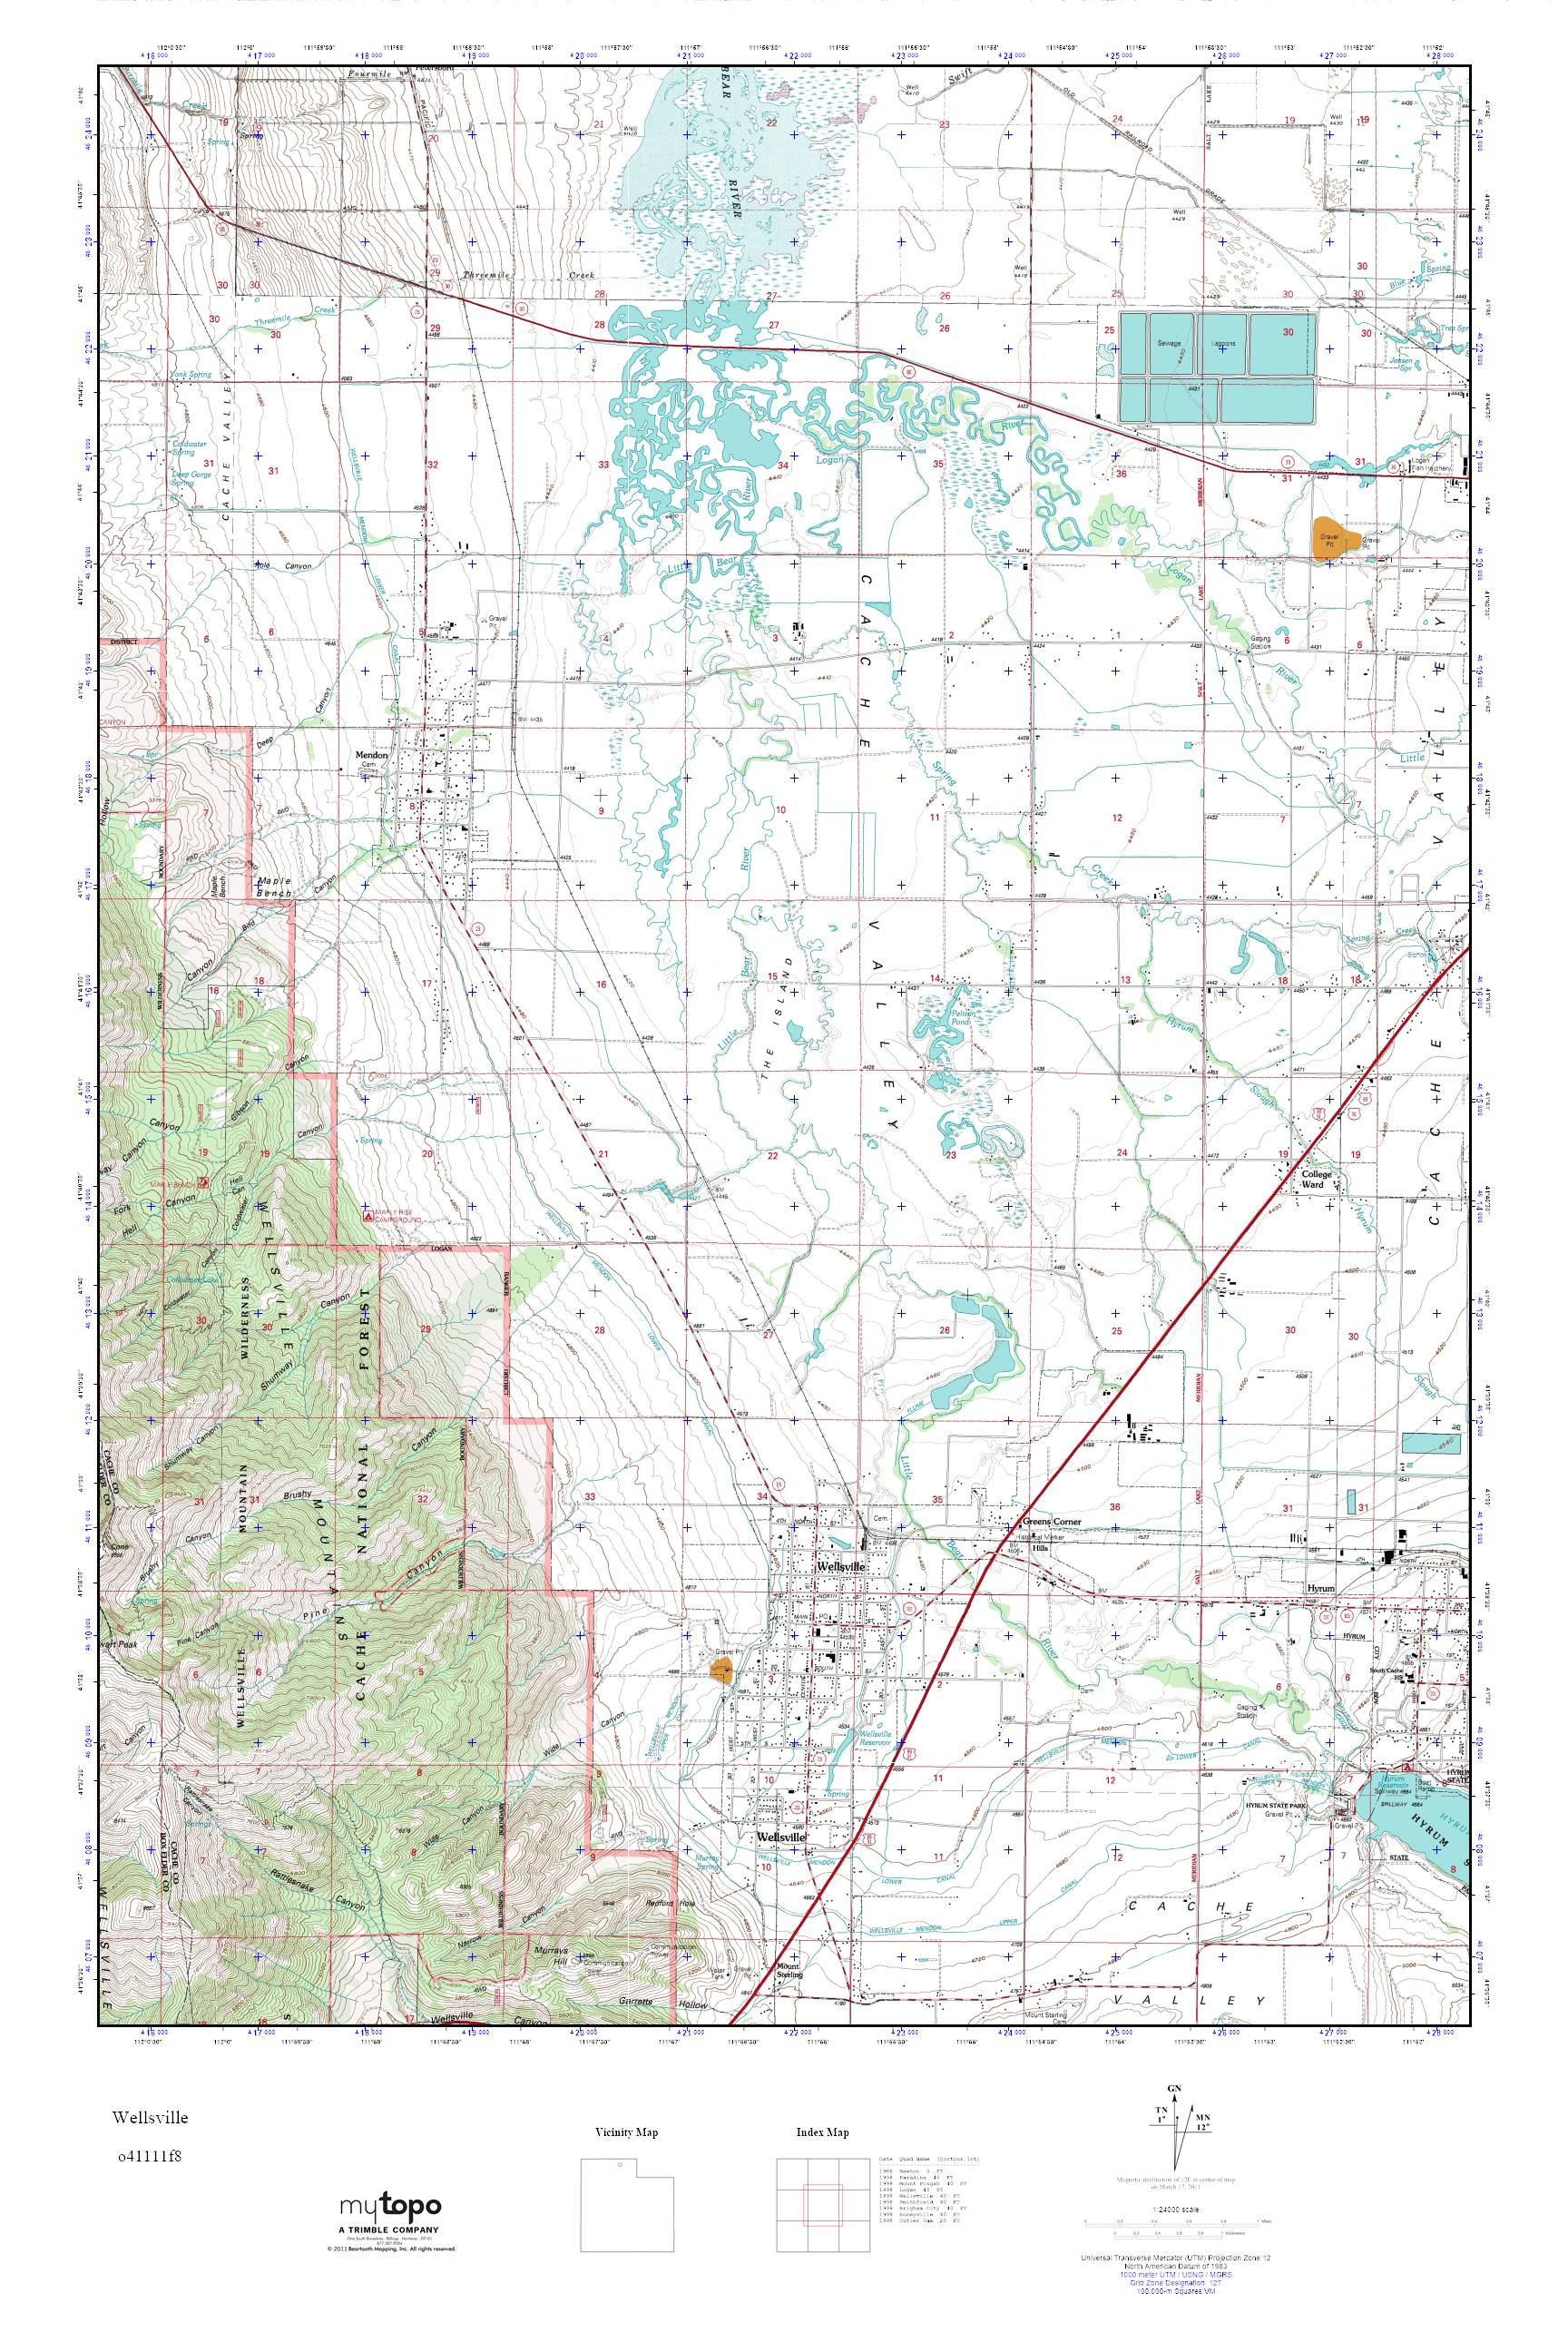 Wellsville Utah Map.Mytopo Wellsville Utah Usgs Quad Topo Map